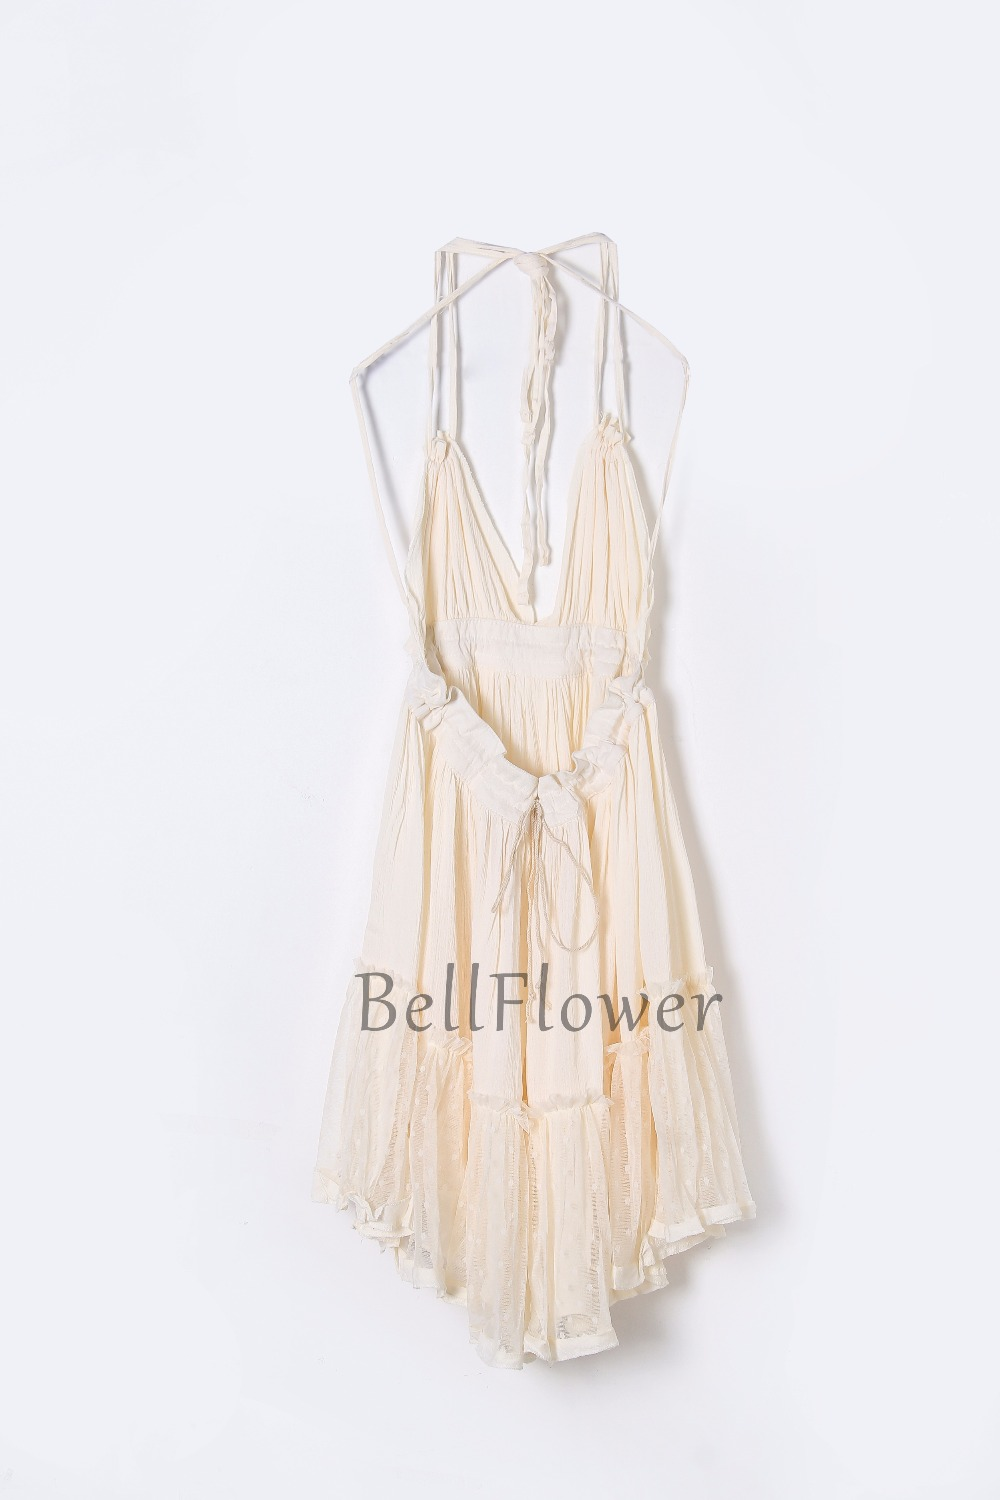 BellFlower 17 Summer Bohemian Women Mini Dress Backless Beach Dress Holiday Boho Strapless Sexy Ball Gown Hippie Chic Dress 10